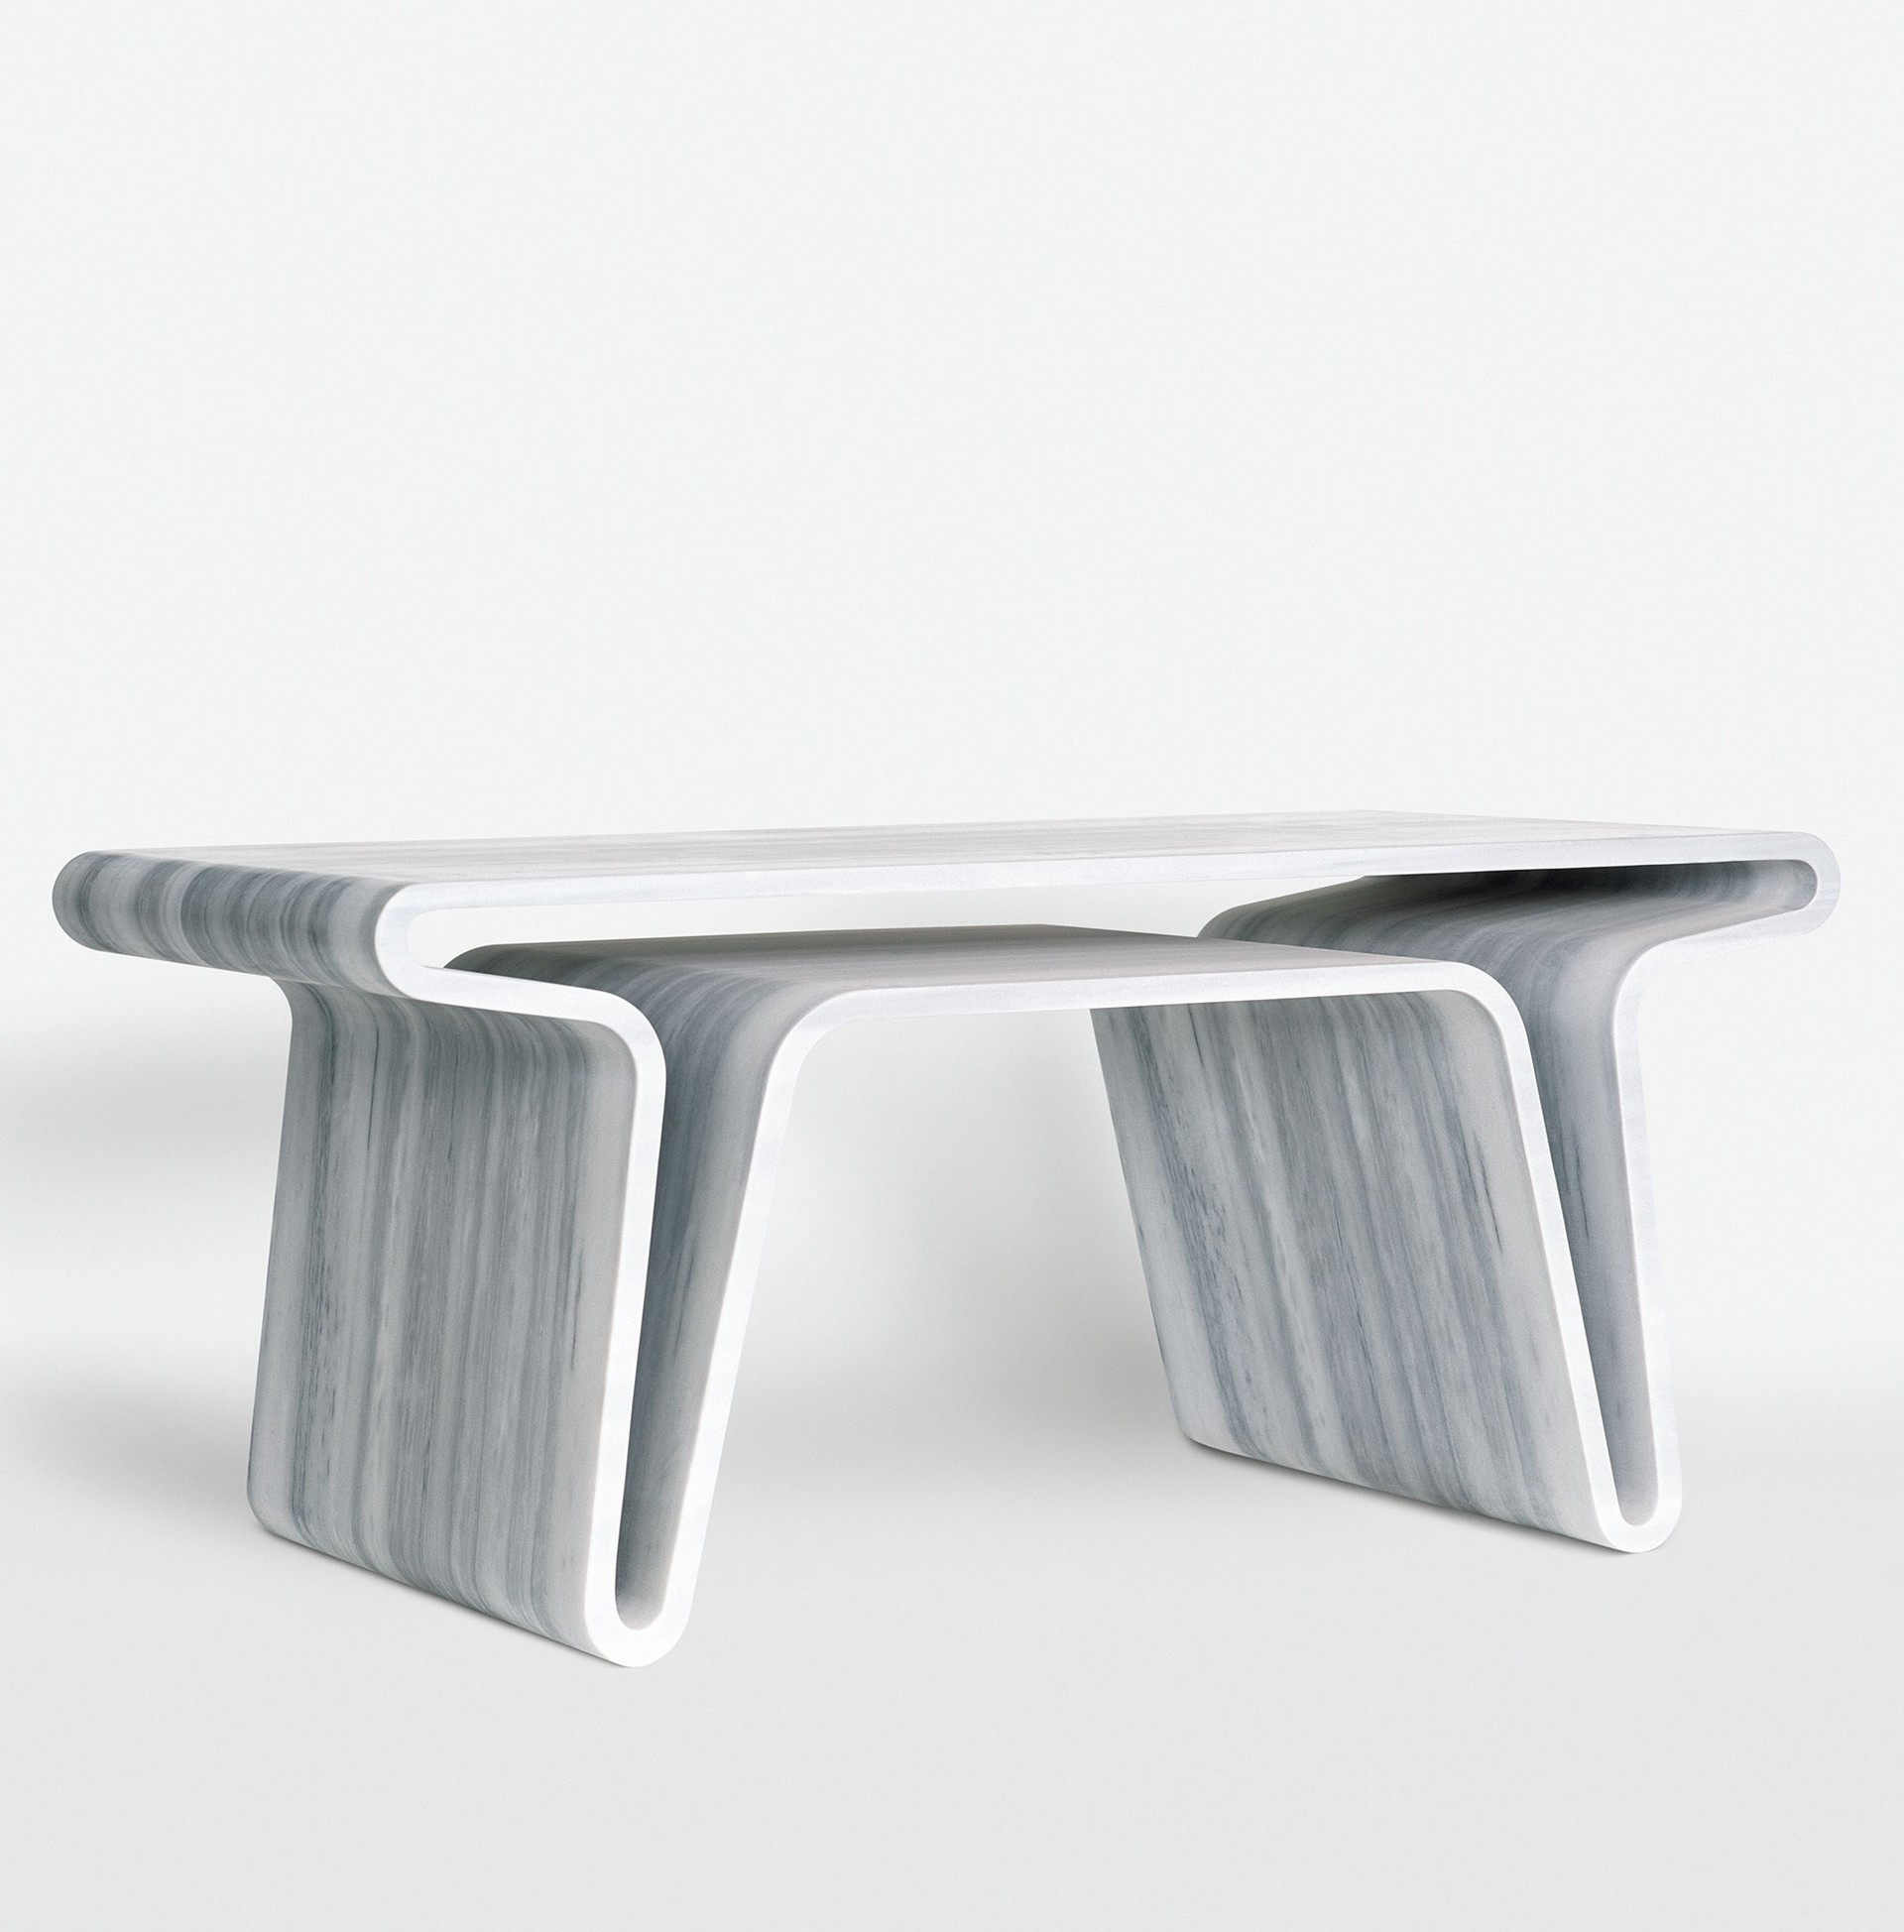 Extruded table3 01.jpg.1920x1000 q90 crop scale